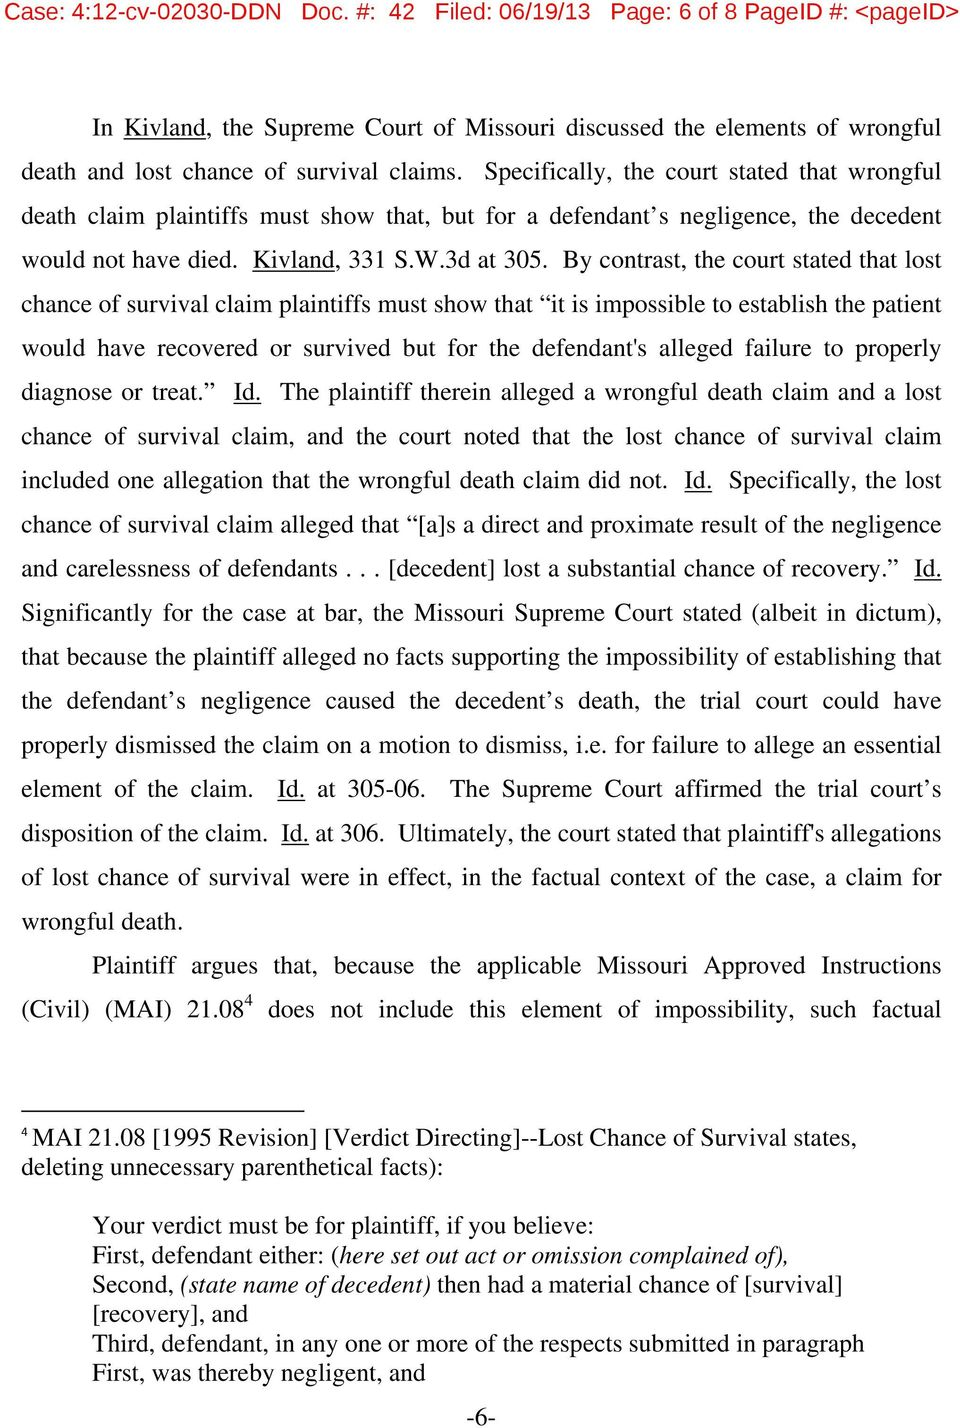 Specifically, the court stated that wrongful death claim plaintiffs must show that, but for a defendant s negligence, the decedent would not have died. Kivland, 331 S.W.3d at 305.